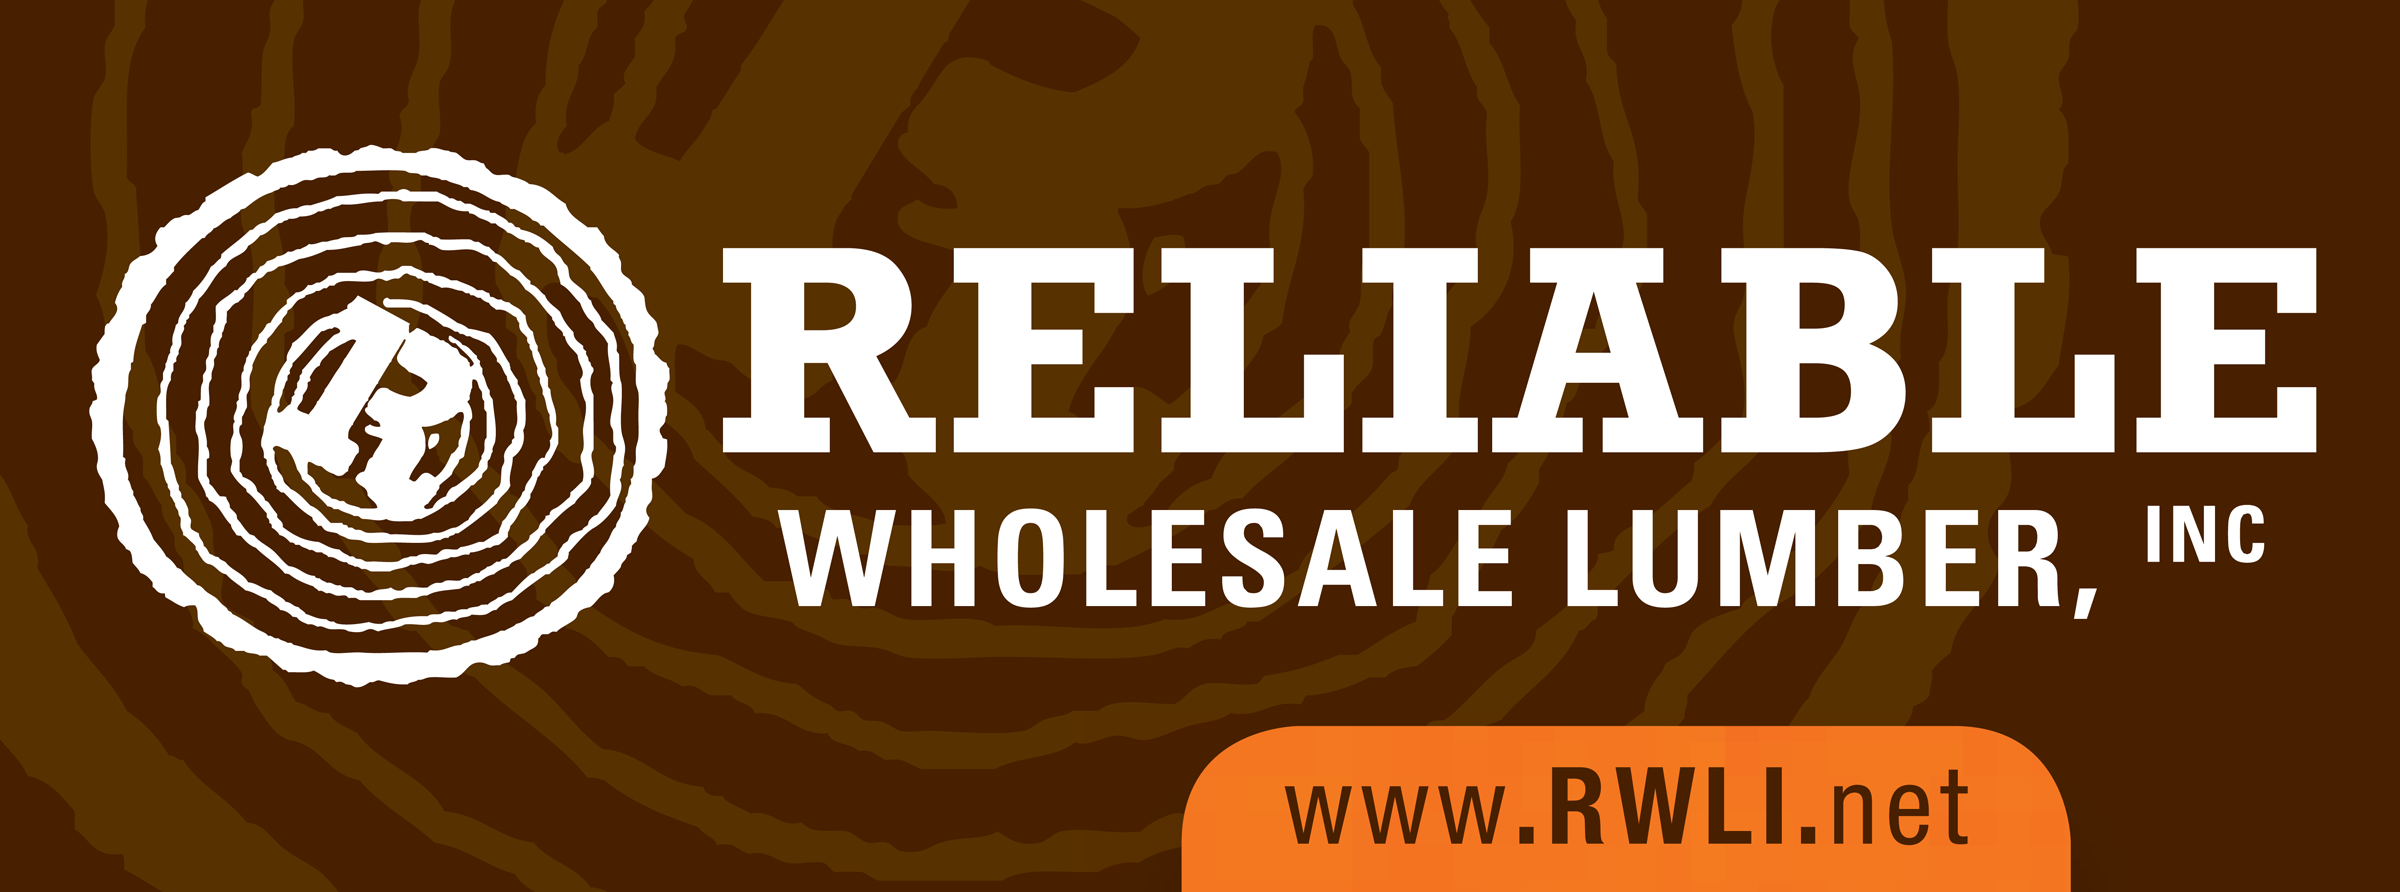 reliable lumber logo.png